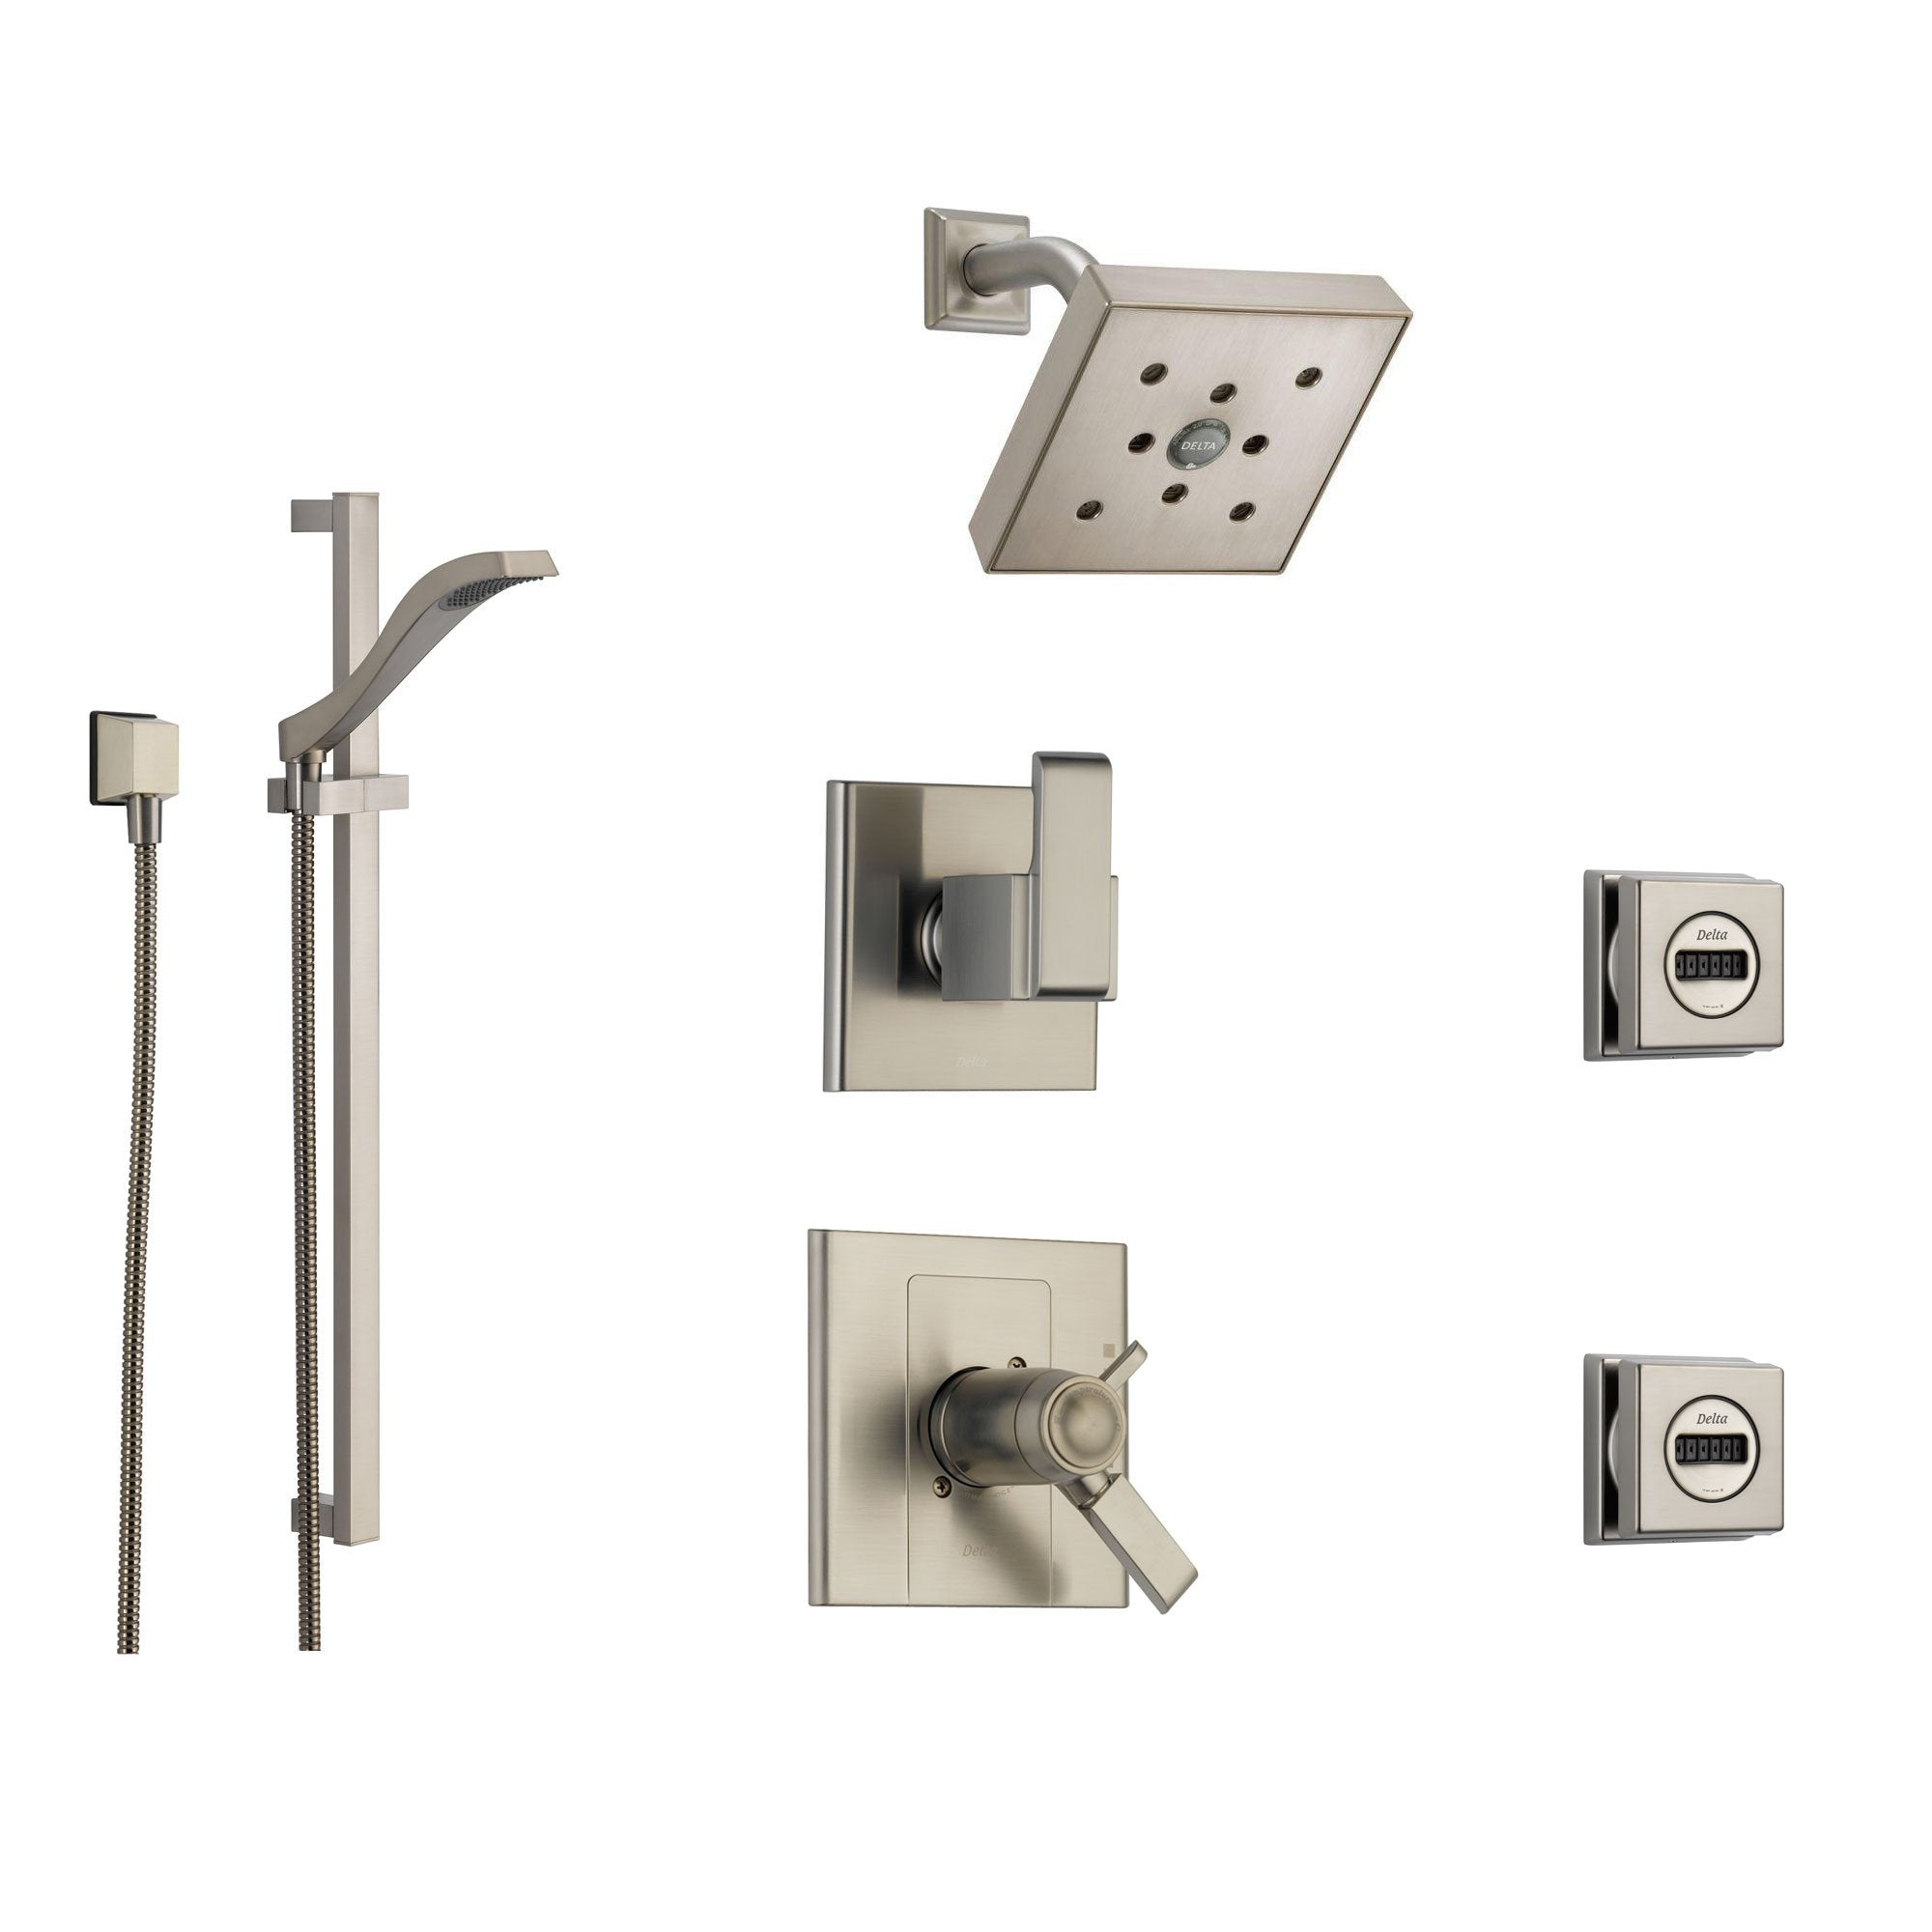 Delta Arzo Stainless Steel Shower System with Thermostatic Shower Handle, 6-setting Diverter, Square Showerhead, Modern Handheld Shower Spray, and 2 Body Sprays SS17T8694SS